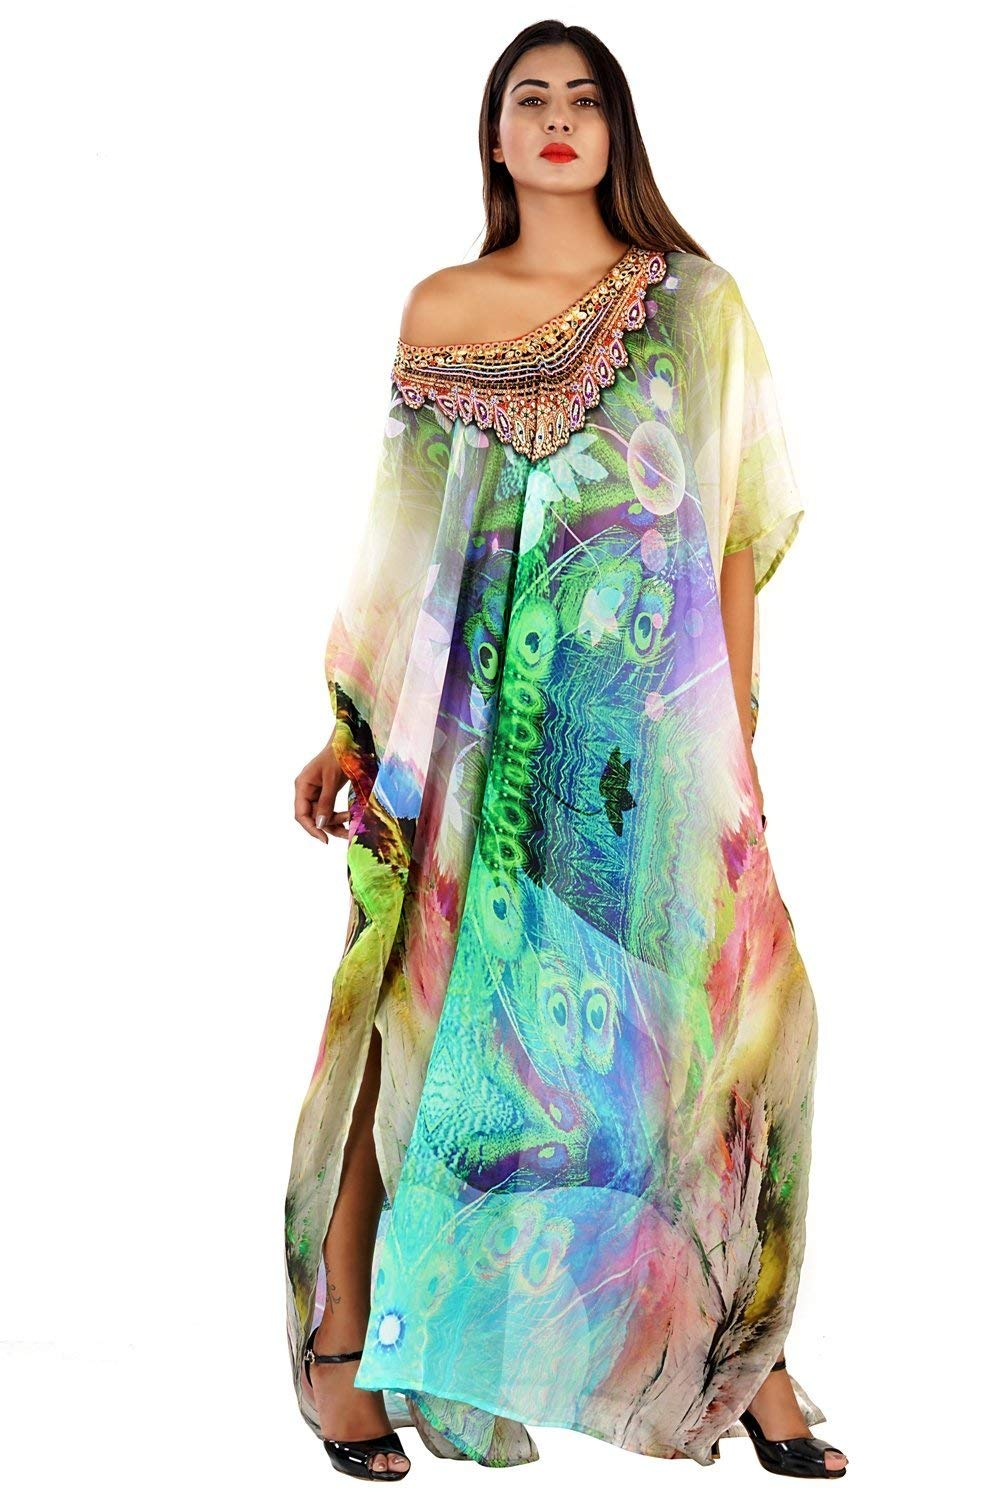 041dfb5b9b Get Quotations · Beautiful womans one piece jewelled full length resort wear  beach coverup kaftan dress gorgeous silk kaftan